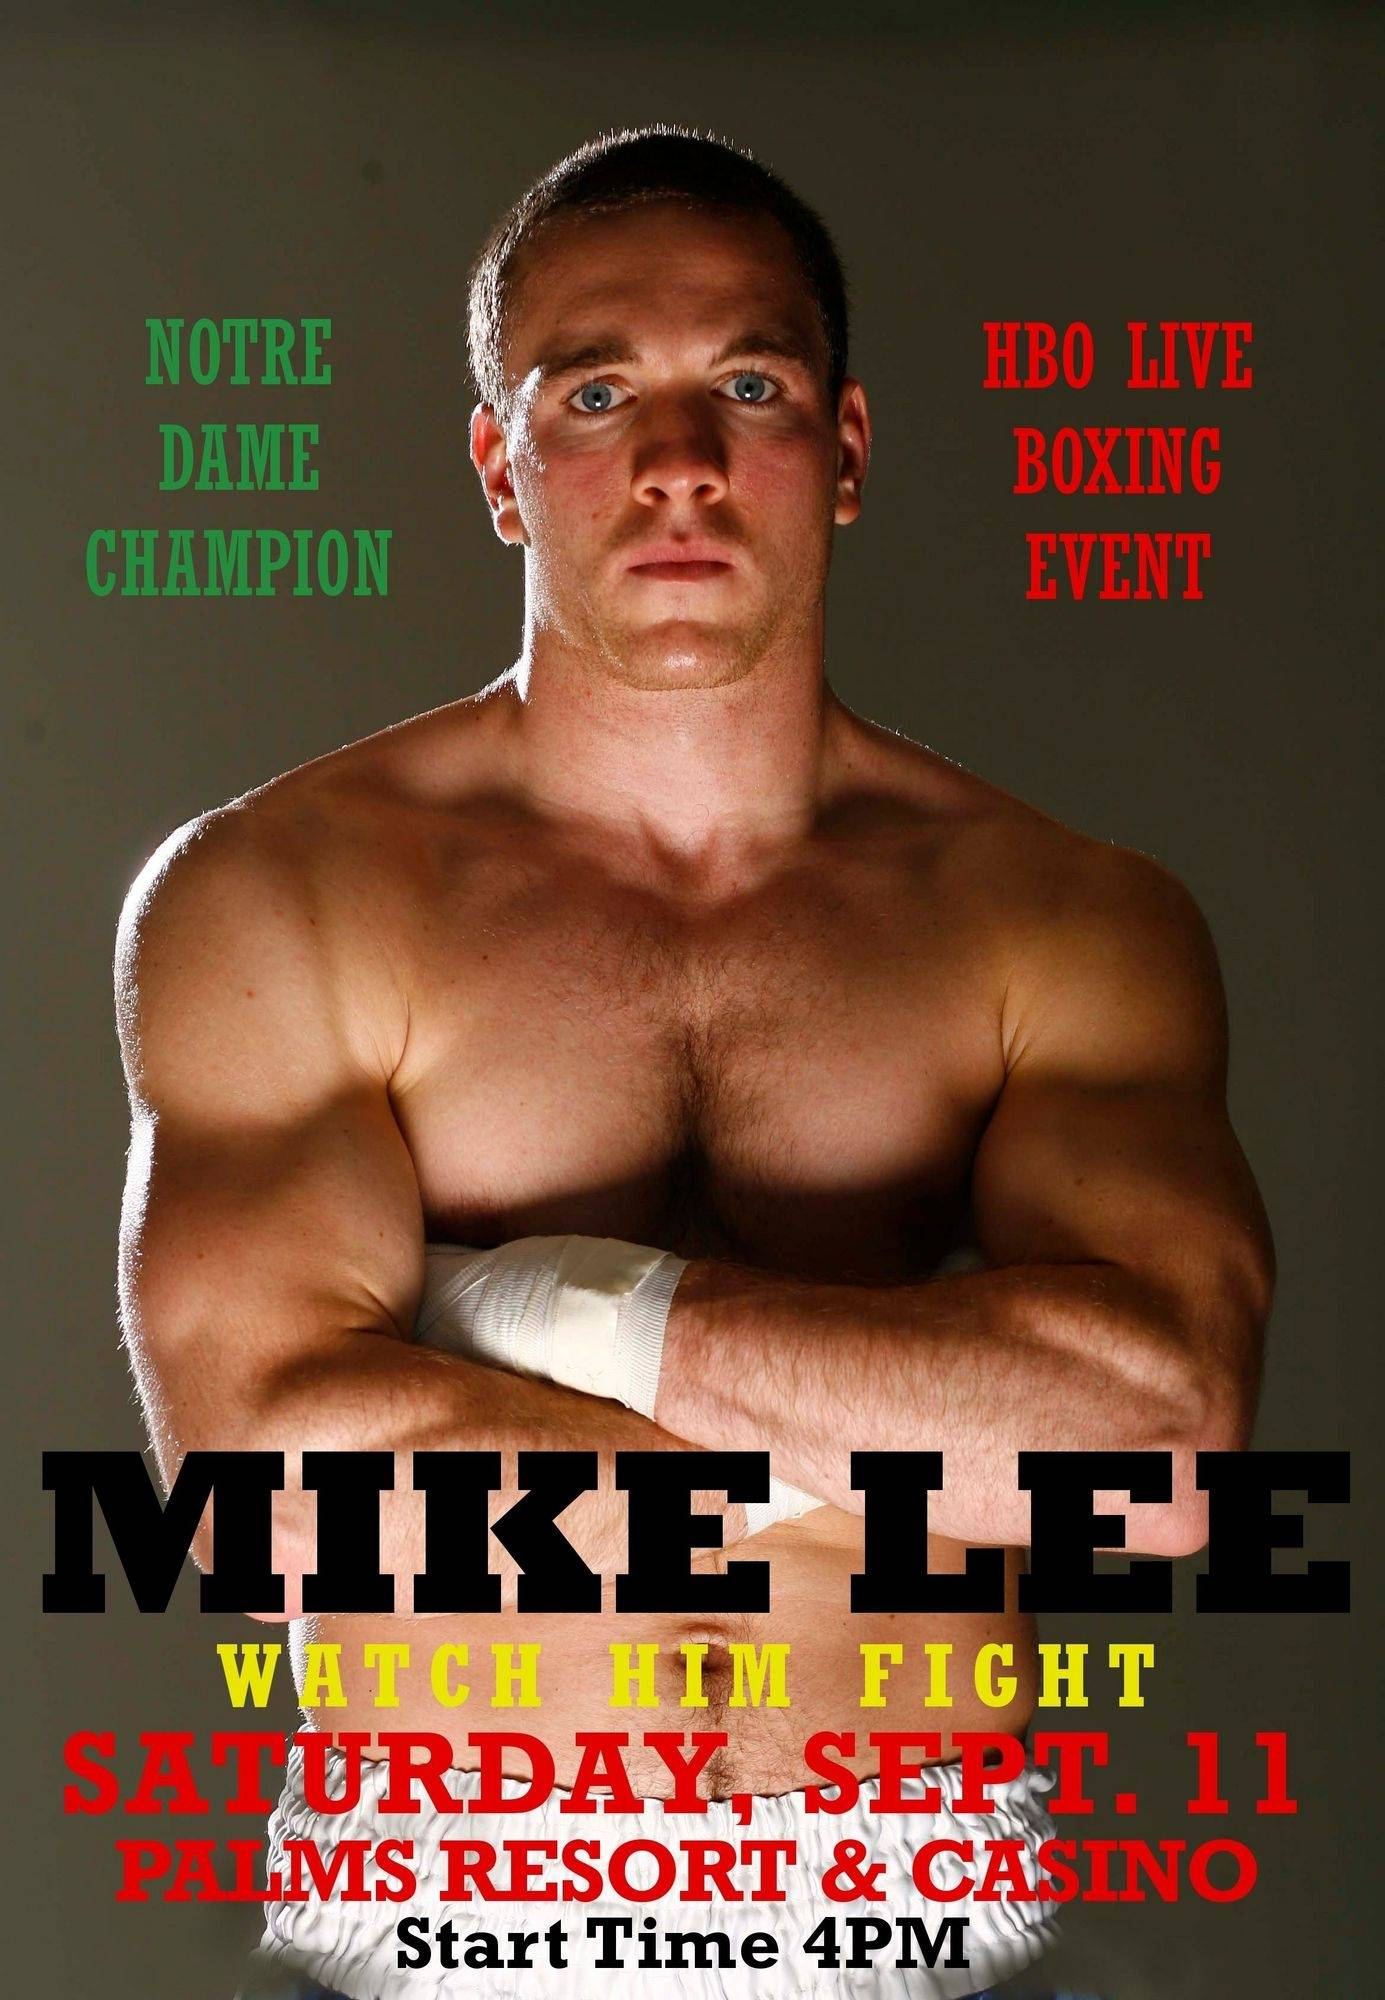 Mike Lee is hoping to continue making boxing connections, starting with his bout Saturday in Las Vegas.